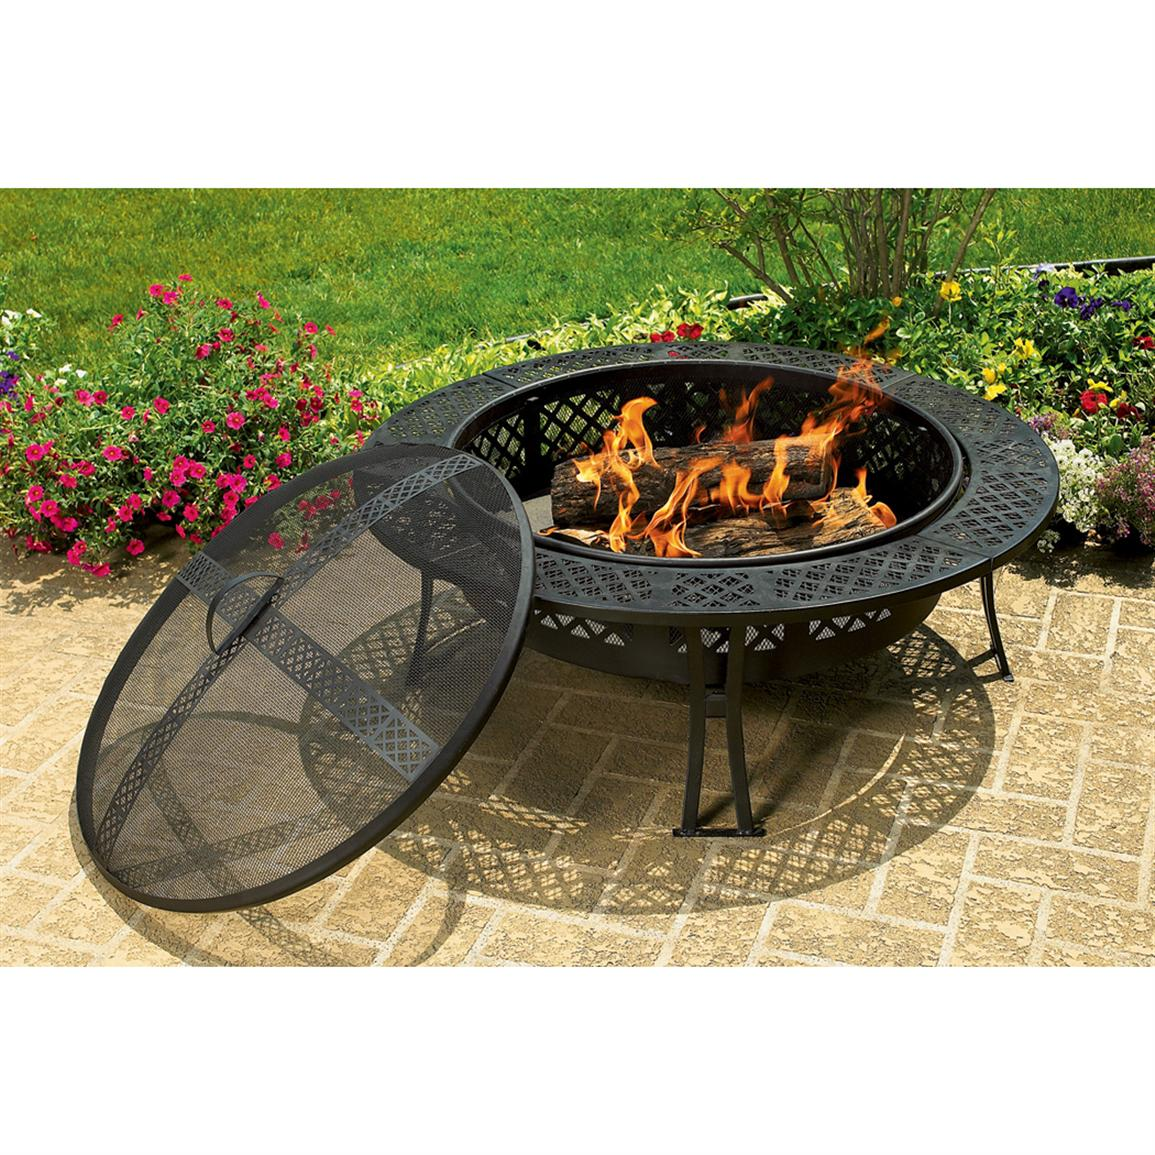 CobraCo Diamond Mesh Fire Pit